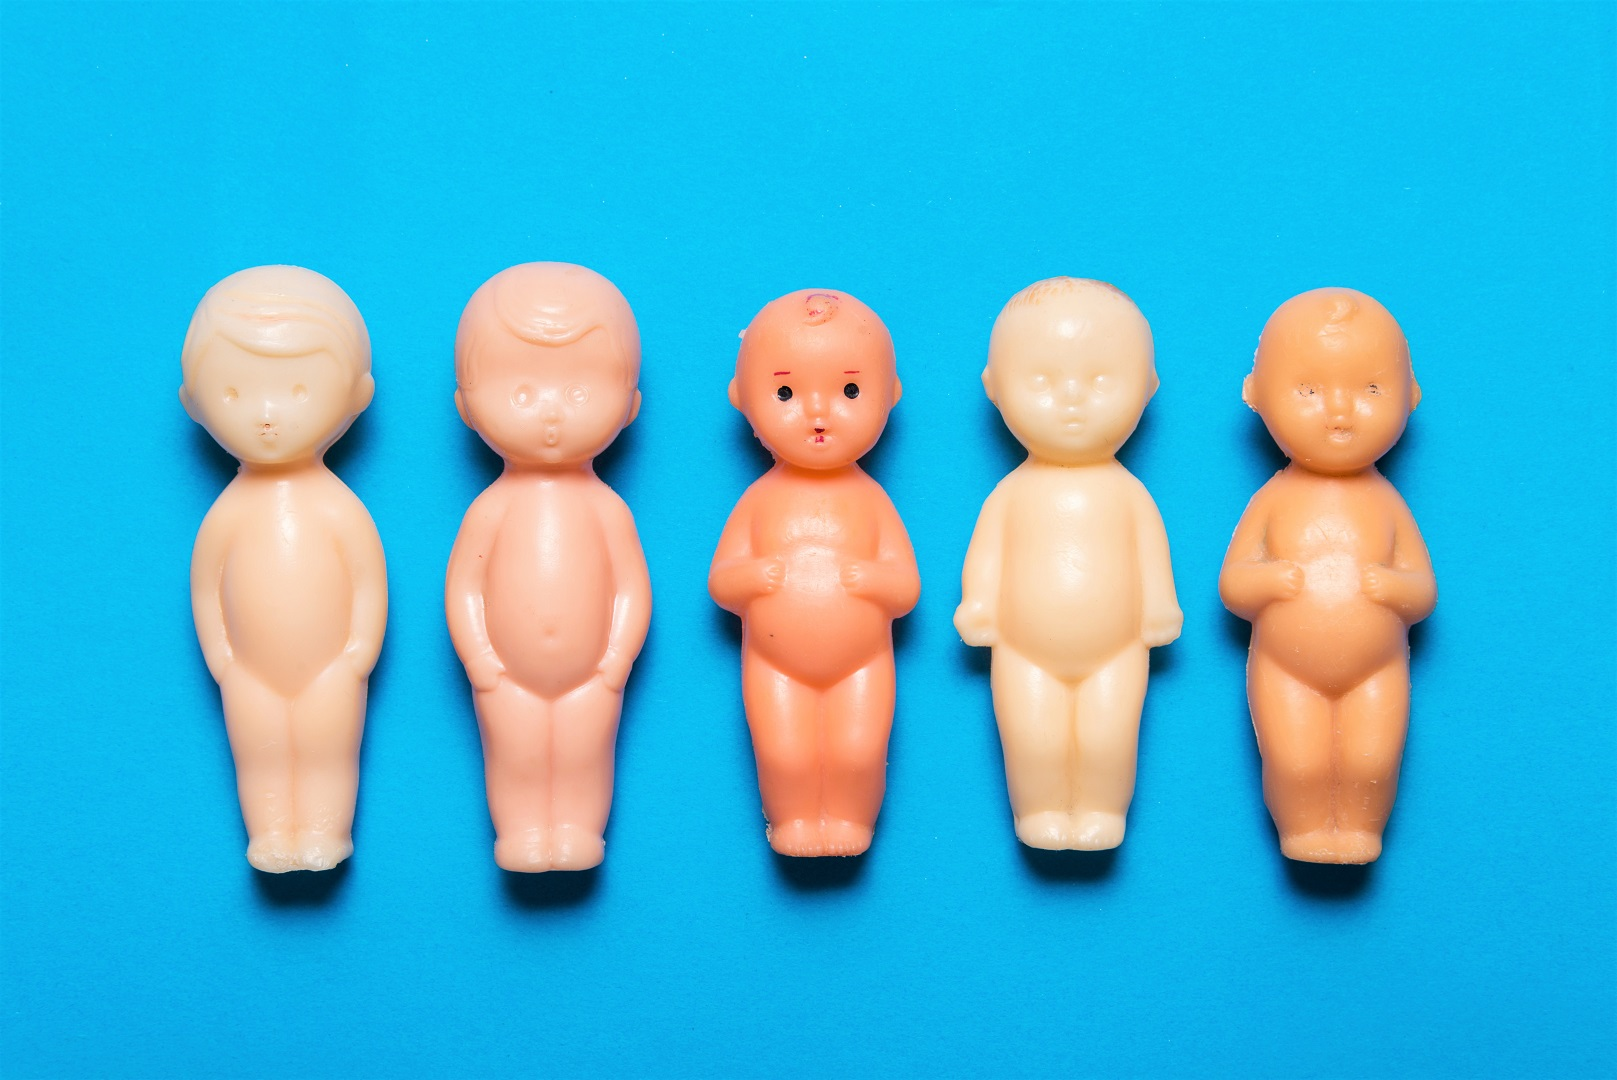 Plastic Baby Doll Figurines